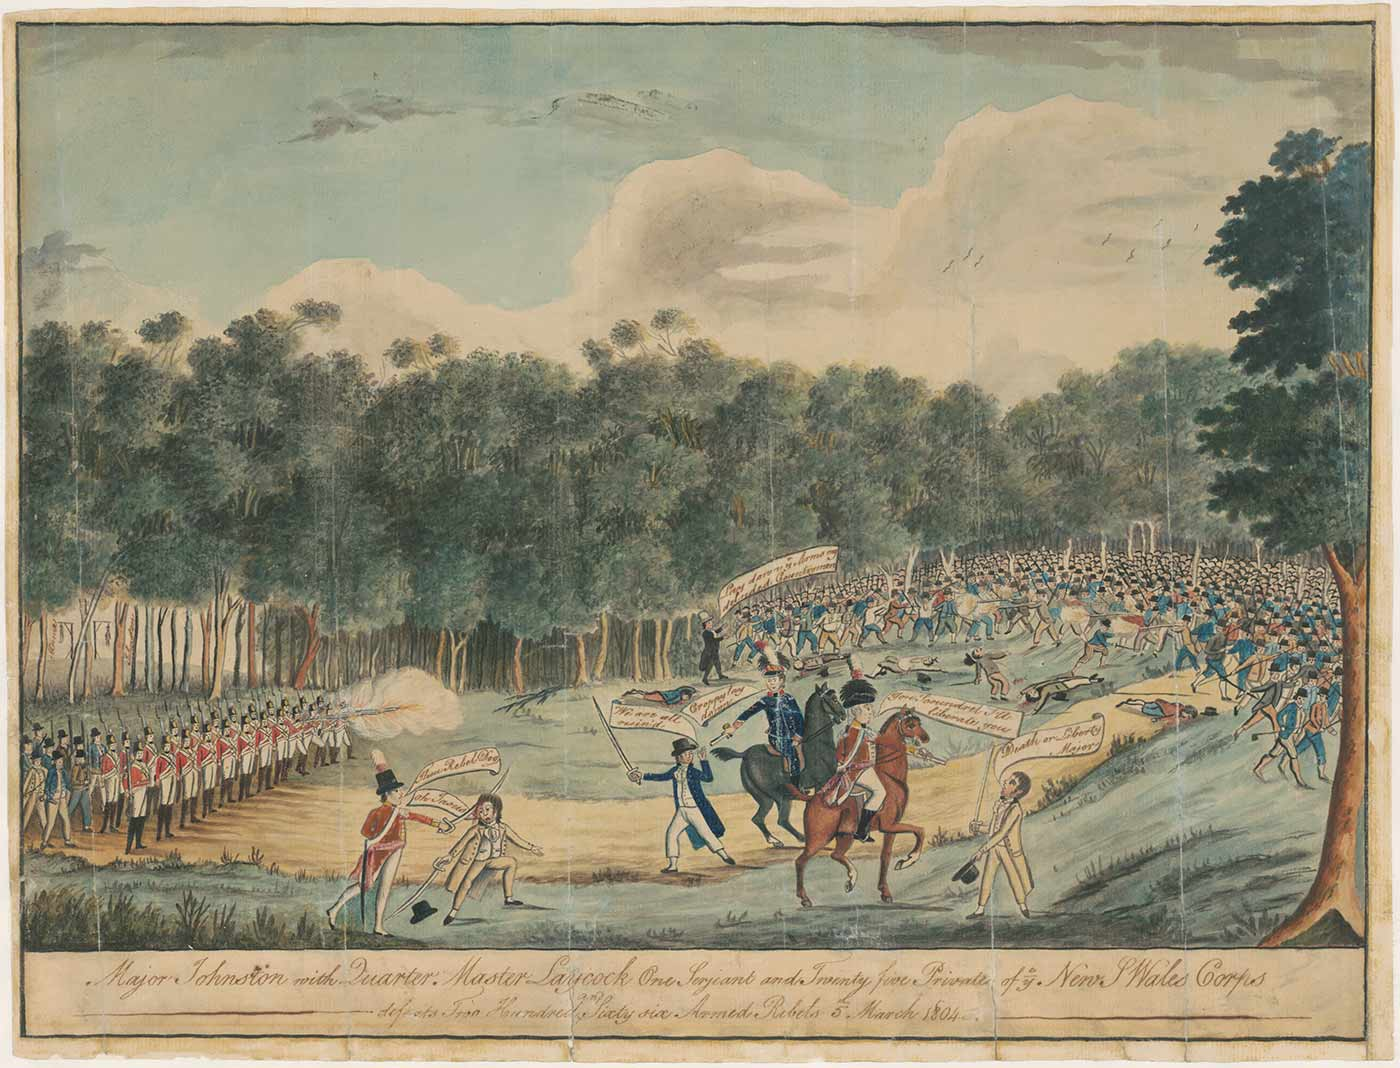 A colour print of two men on horseback leading a group of colonial troopers firing guns (left). One of the men on horseback points a gun at a civilian holding a sword. Many civilians are seen on the right, most carrying weapons - click to view larger image